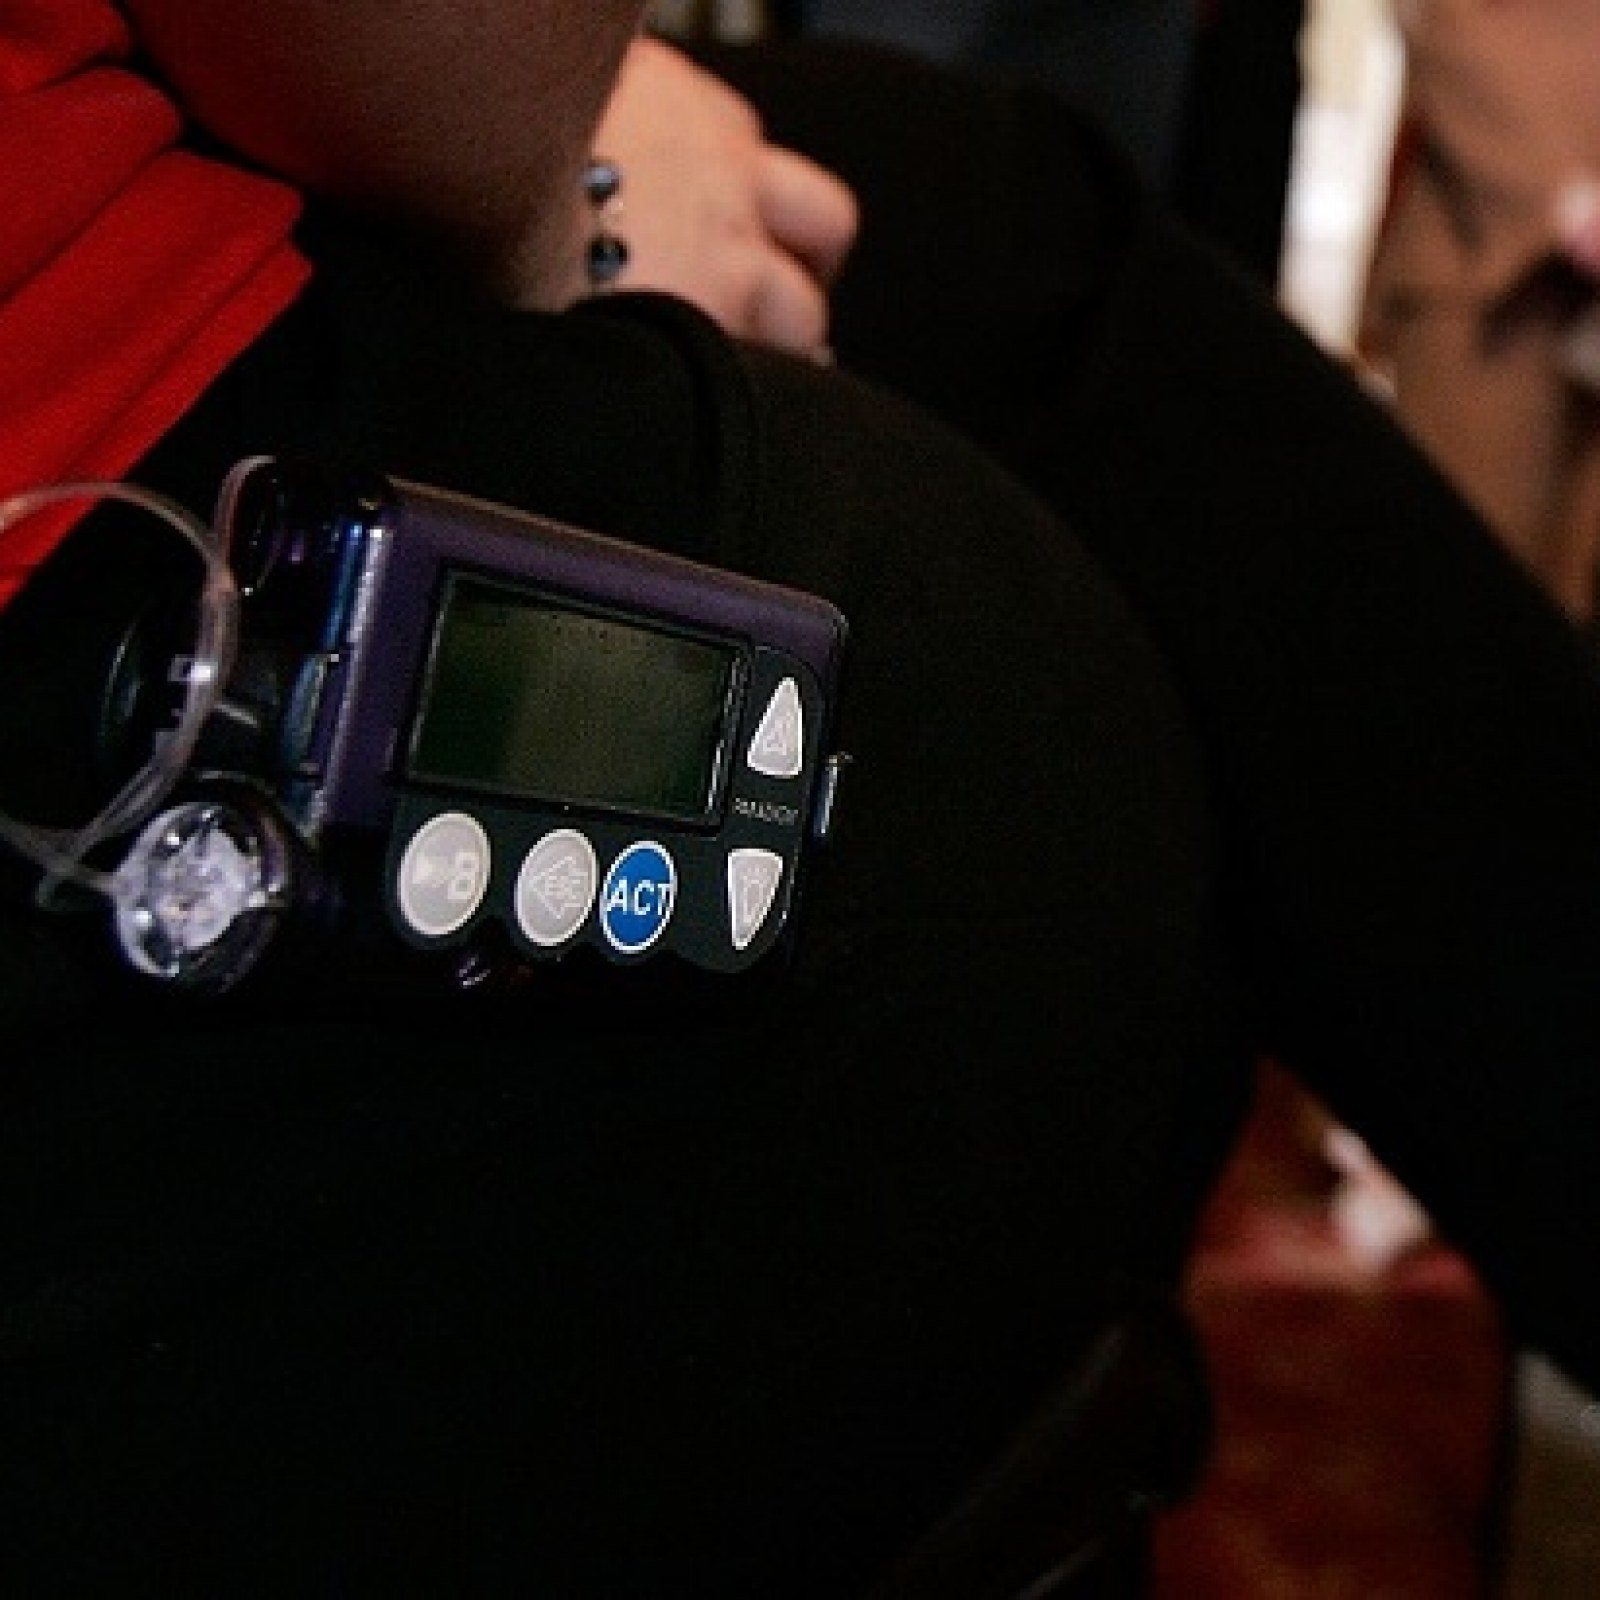 FDA Warns Hackers Could Hijack Medtronic MiniMed Insulin Pumps And